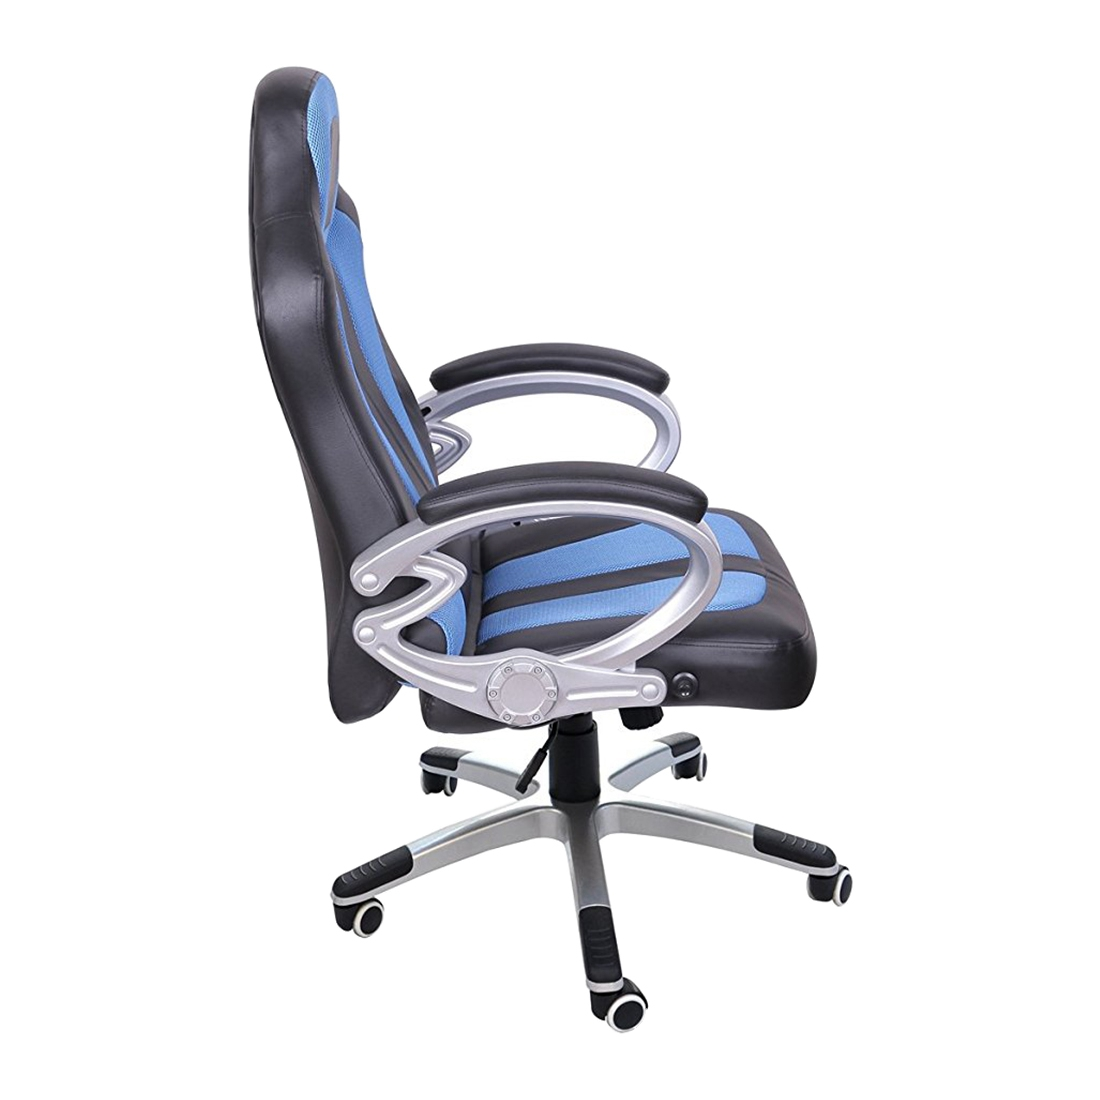 Adjustable Racing fice Chair puter Desk Chair With